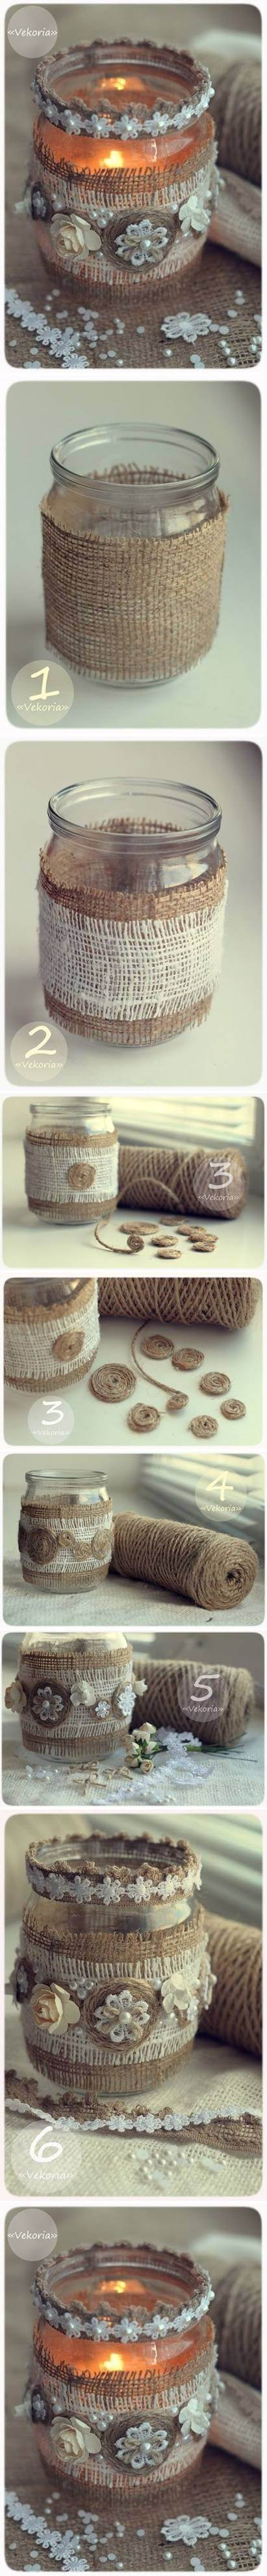 Button and Burlap Hand Wrapped Votive Candle